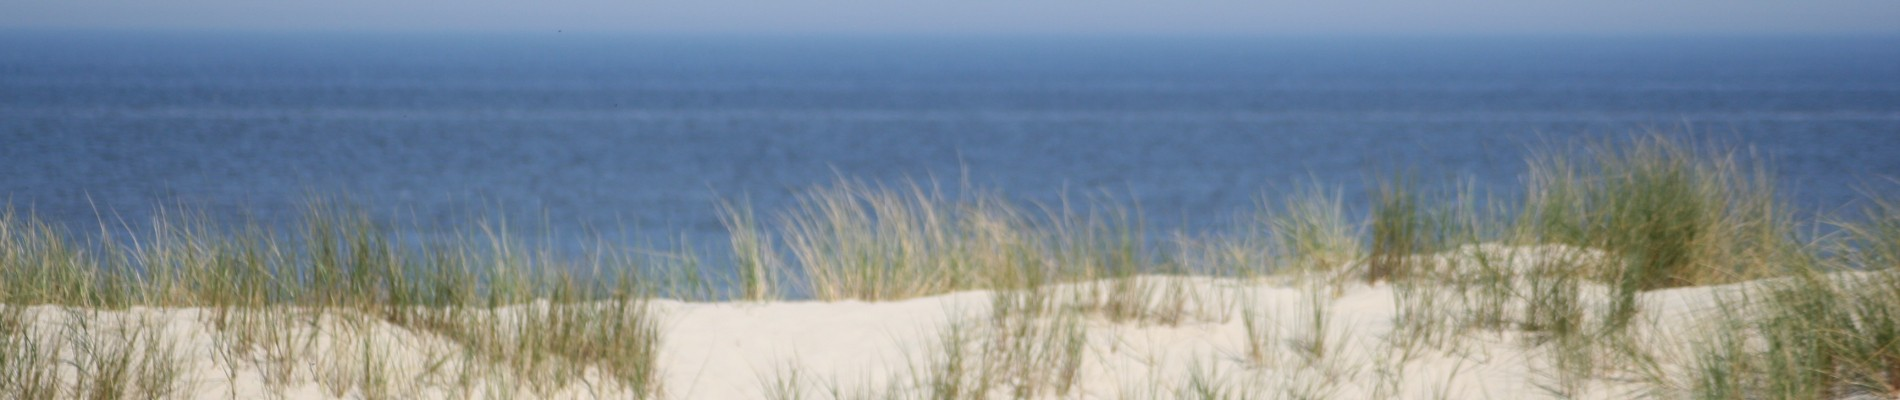 Header Strand Duin Links